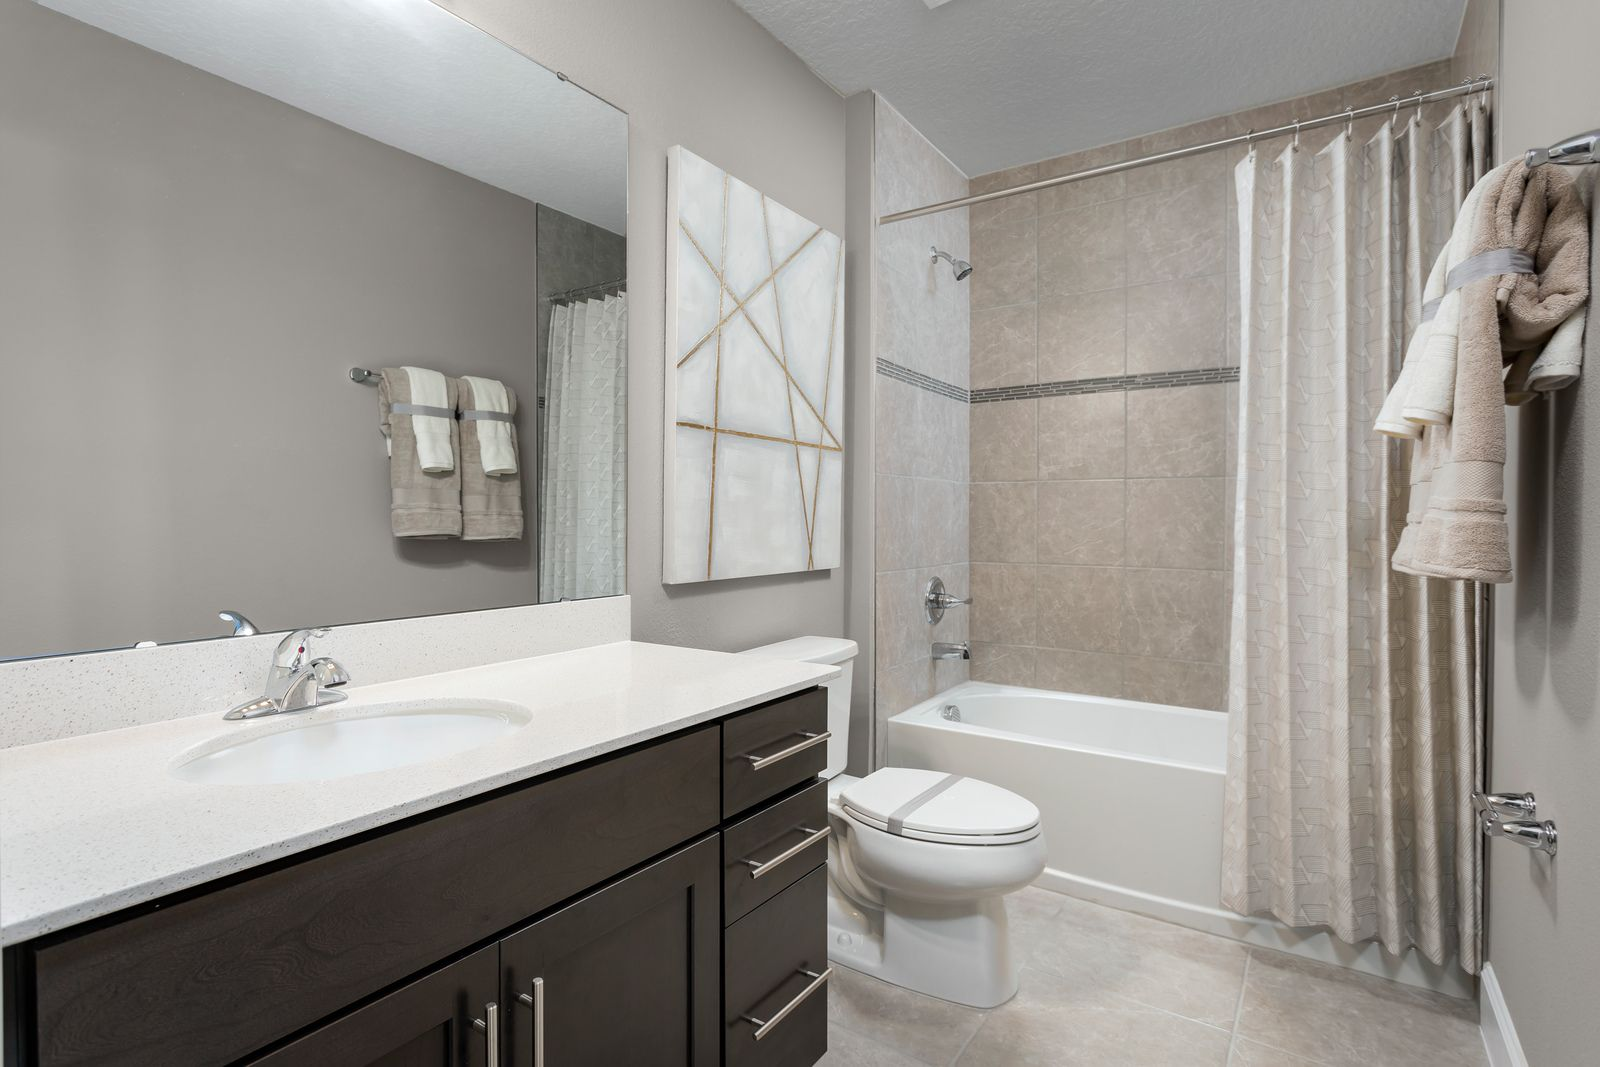 Bathroom featured in the Rochelle By Ryan Homes in Orlando, FL